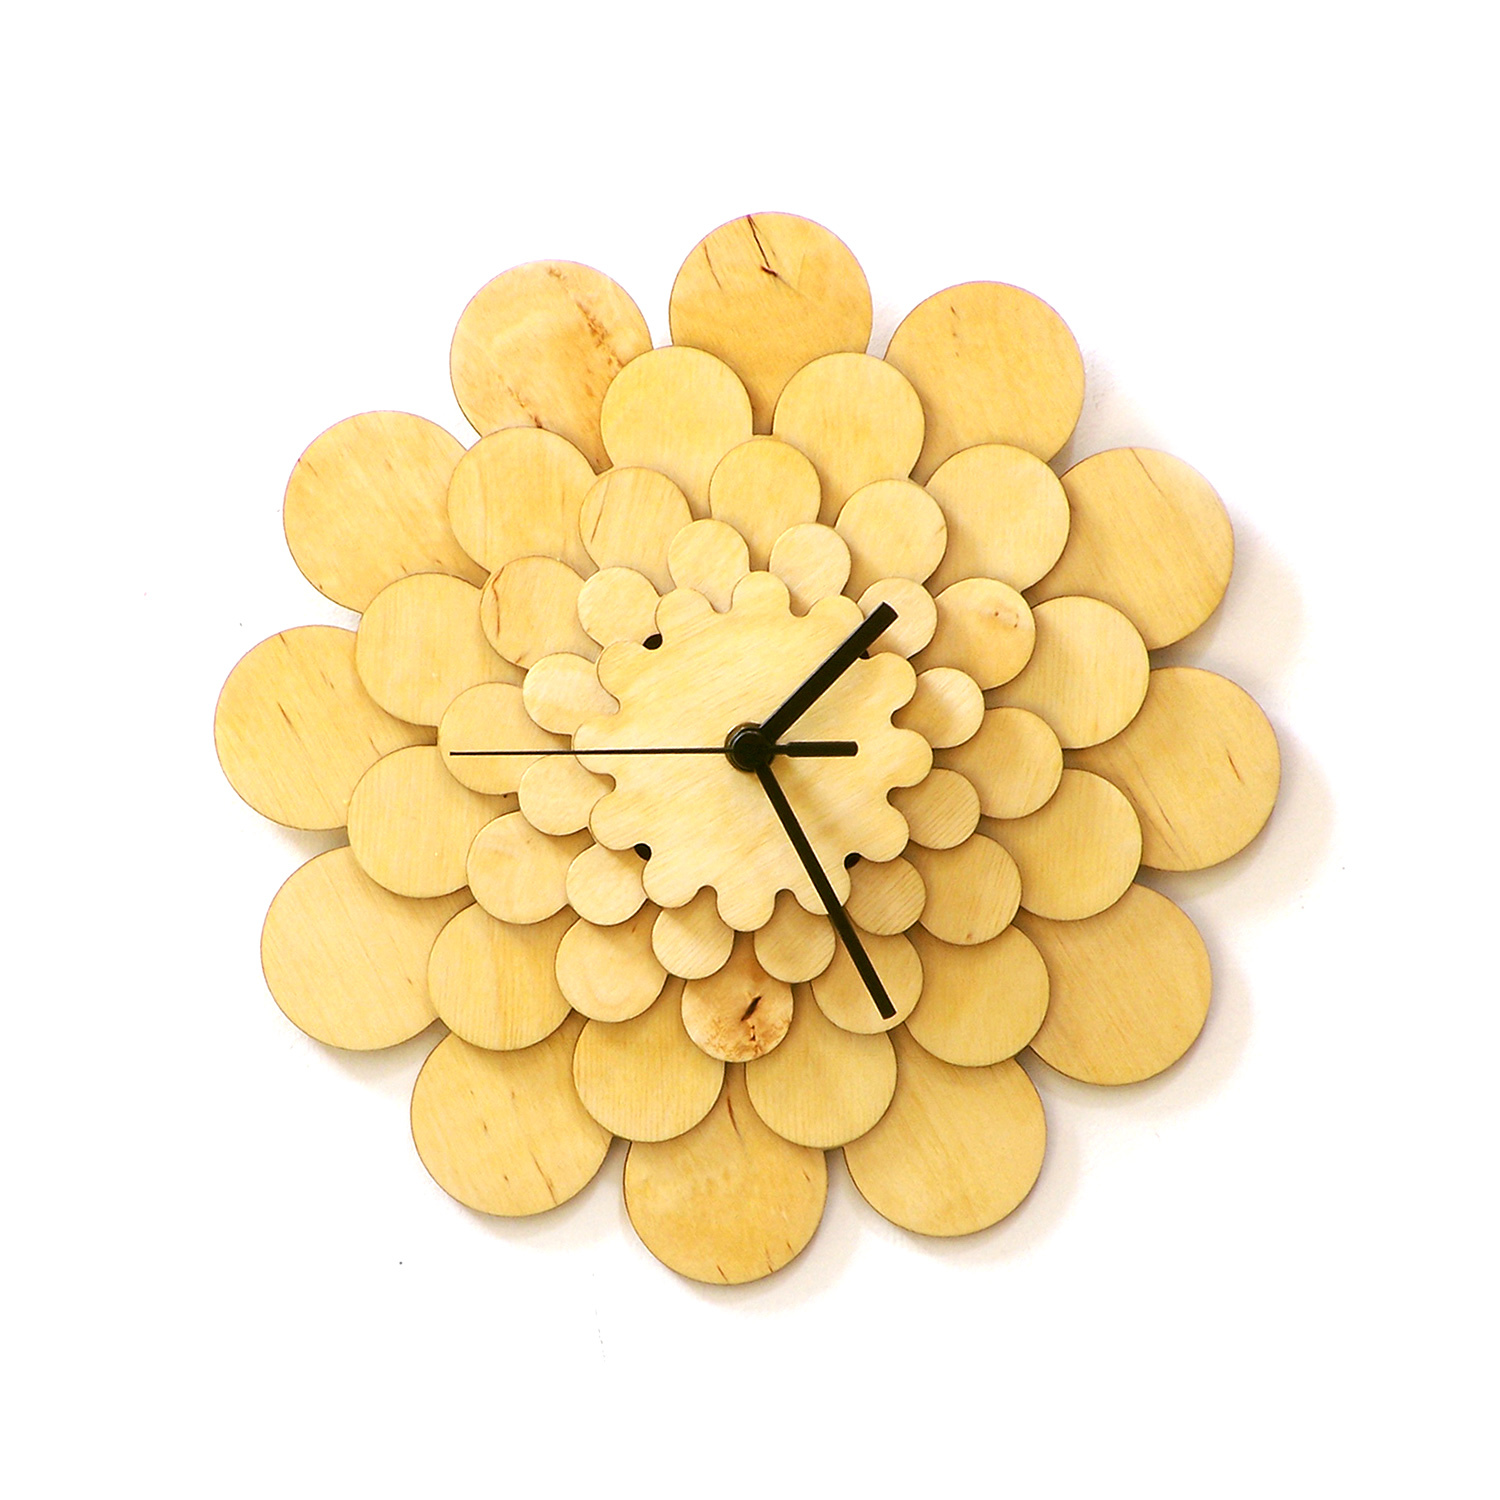 Natural tone wooden wall clock with floral appearance, a wall art - Dahlia M